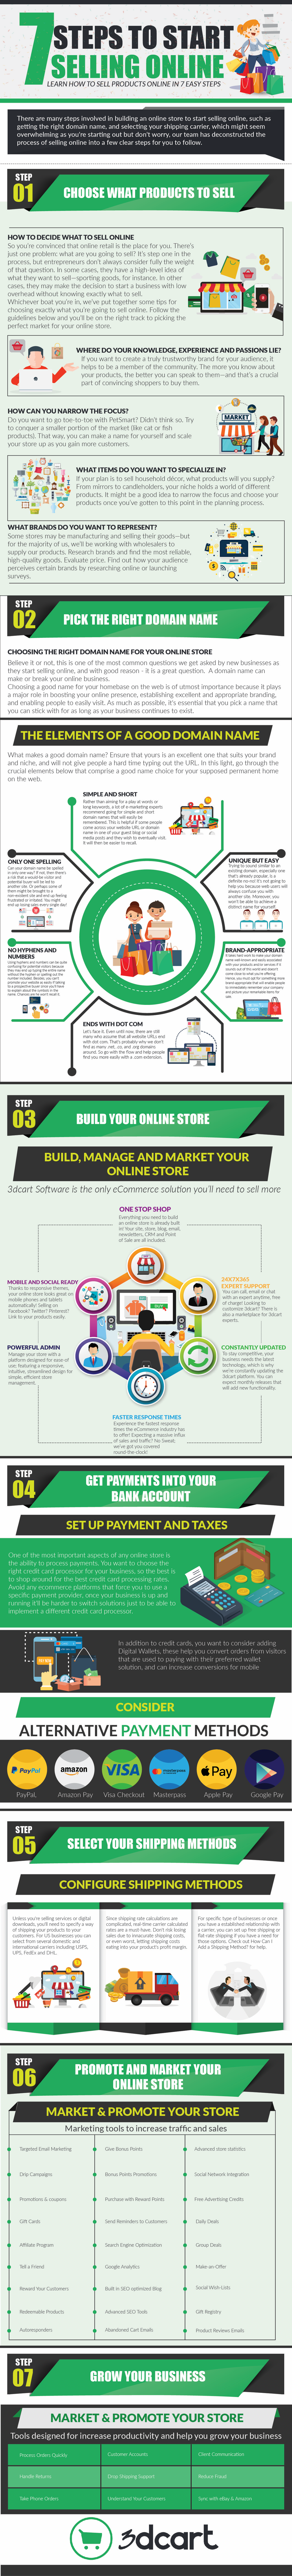 how-to-sell-online-infographic.png